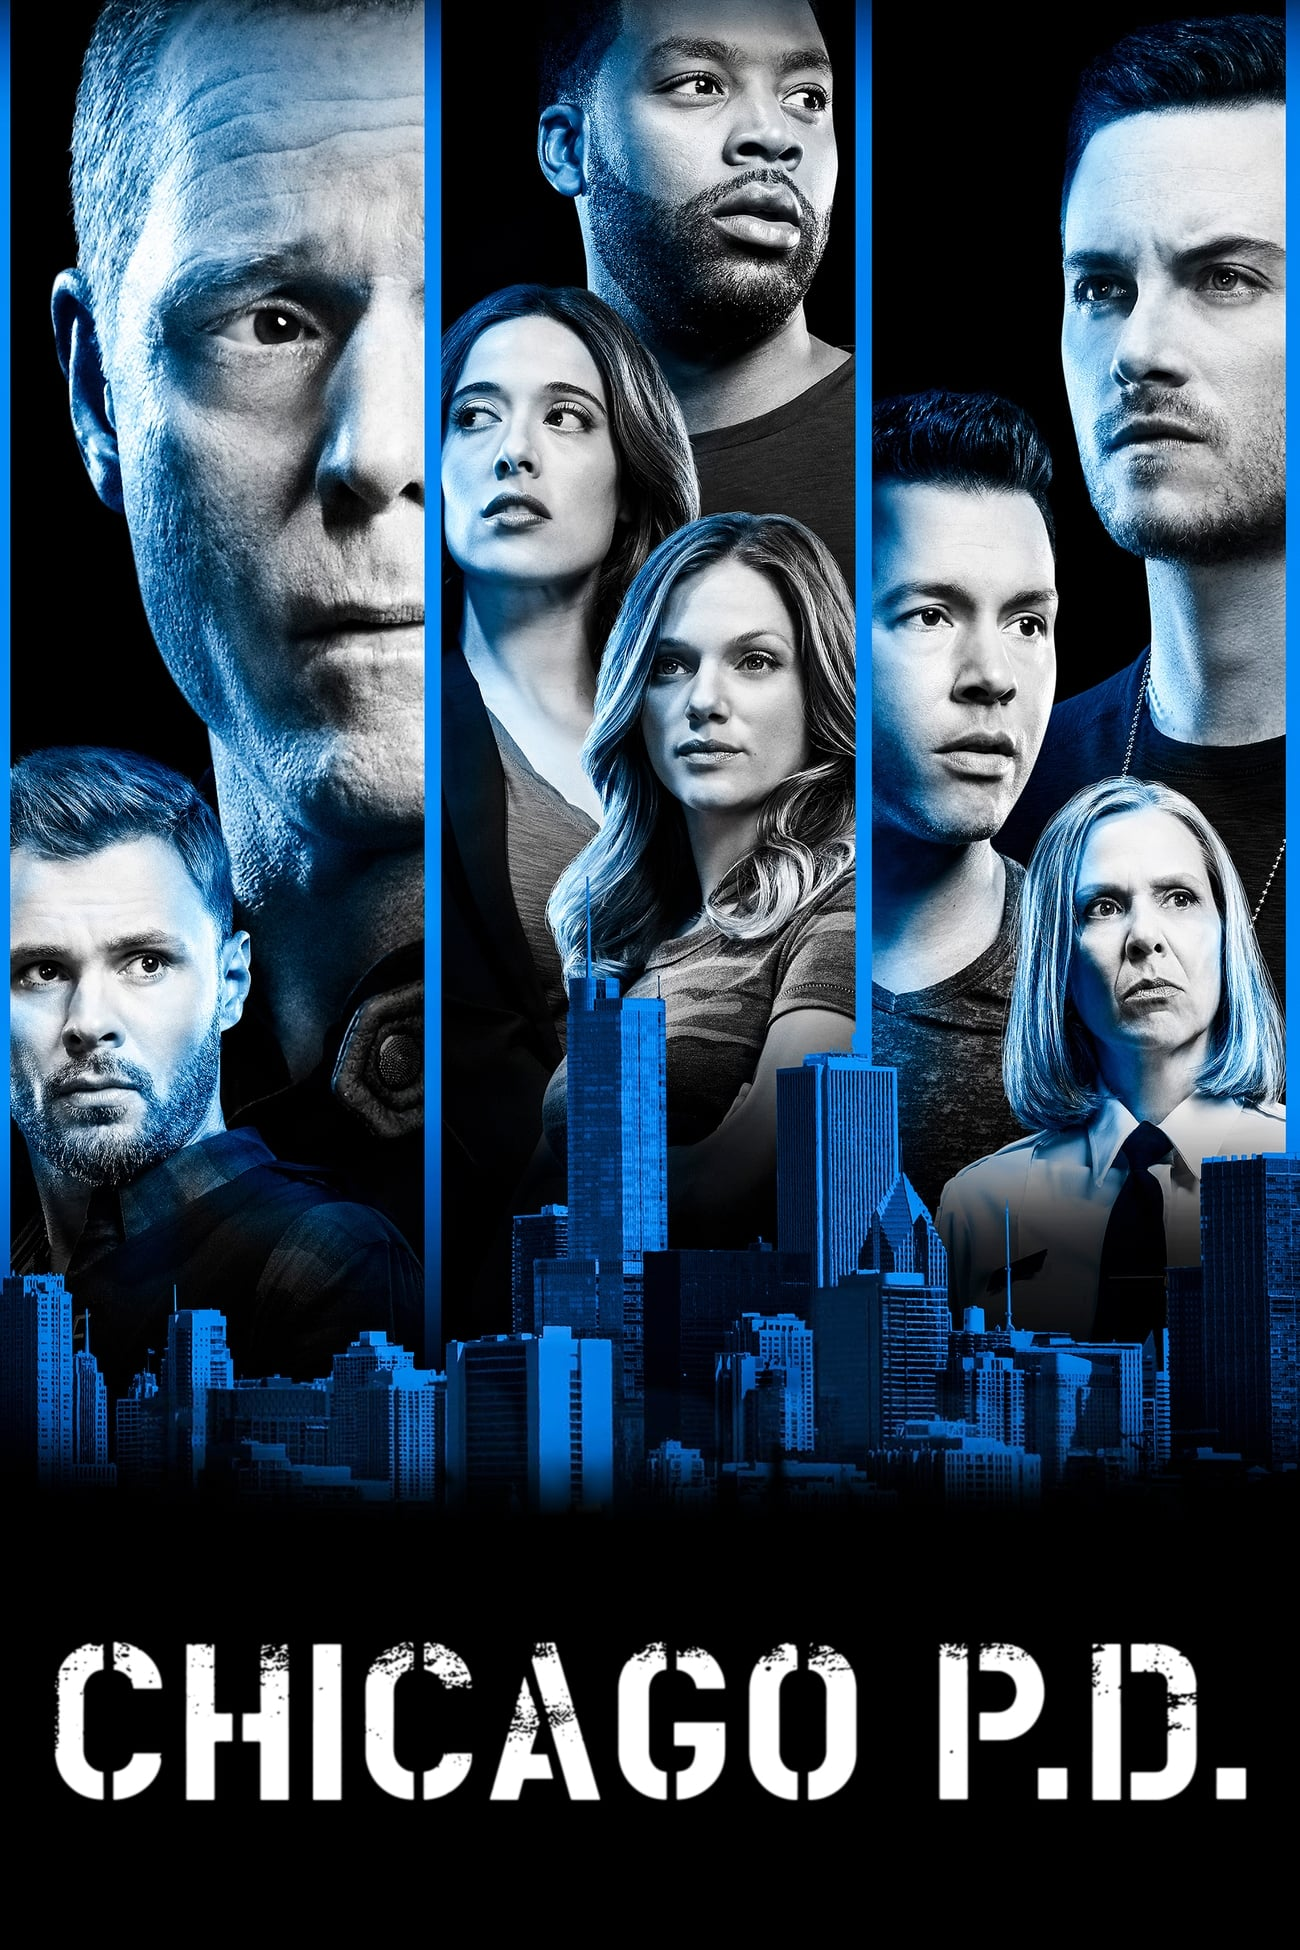 image for Chicago P.D.